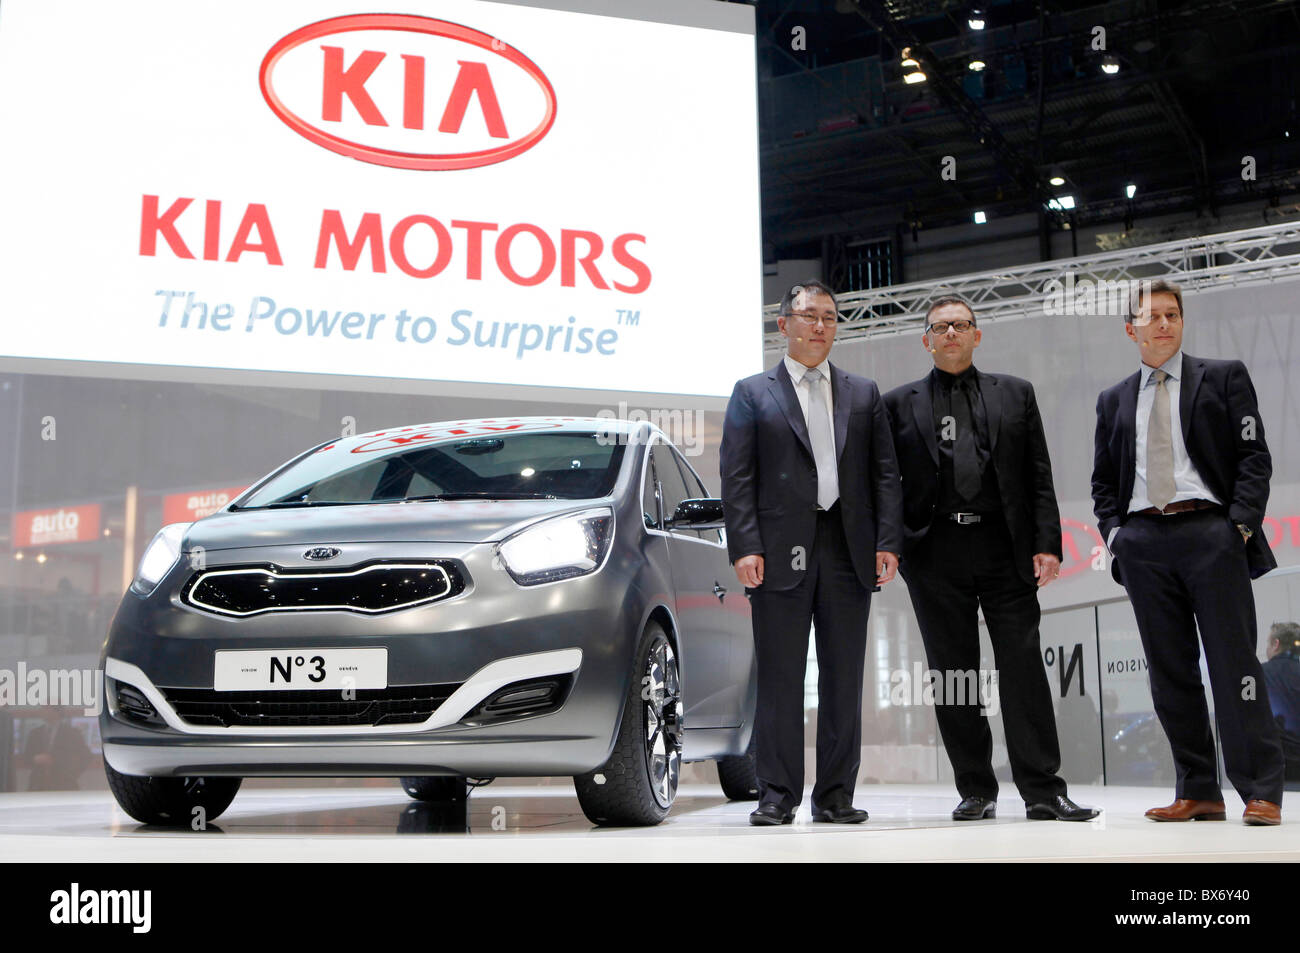 how to buy kia motors stock